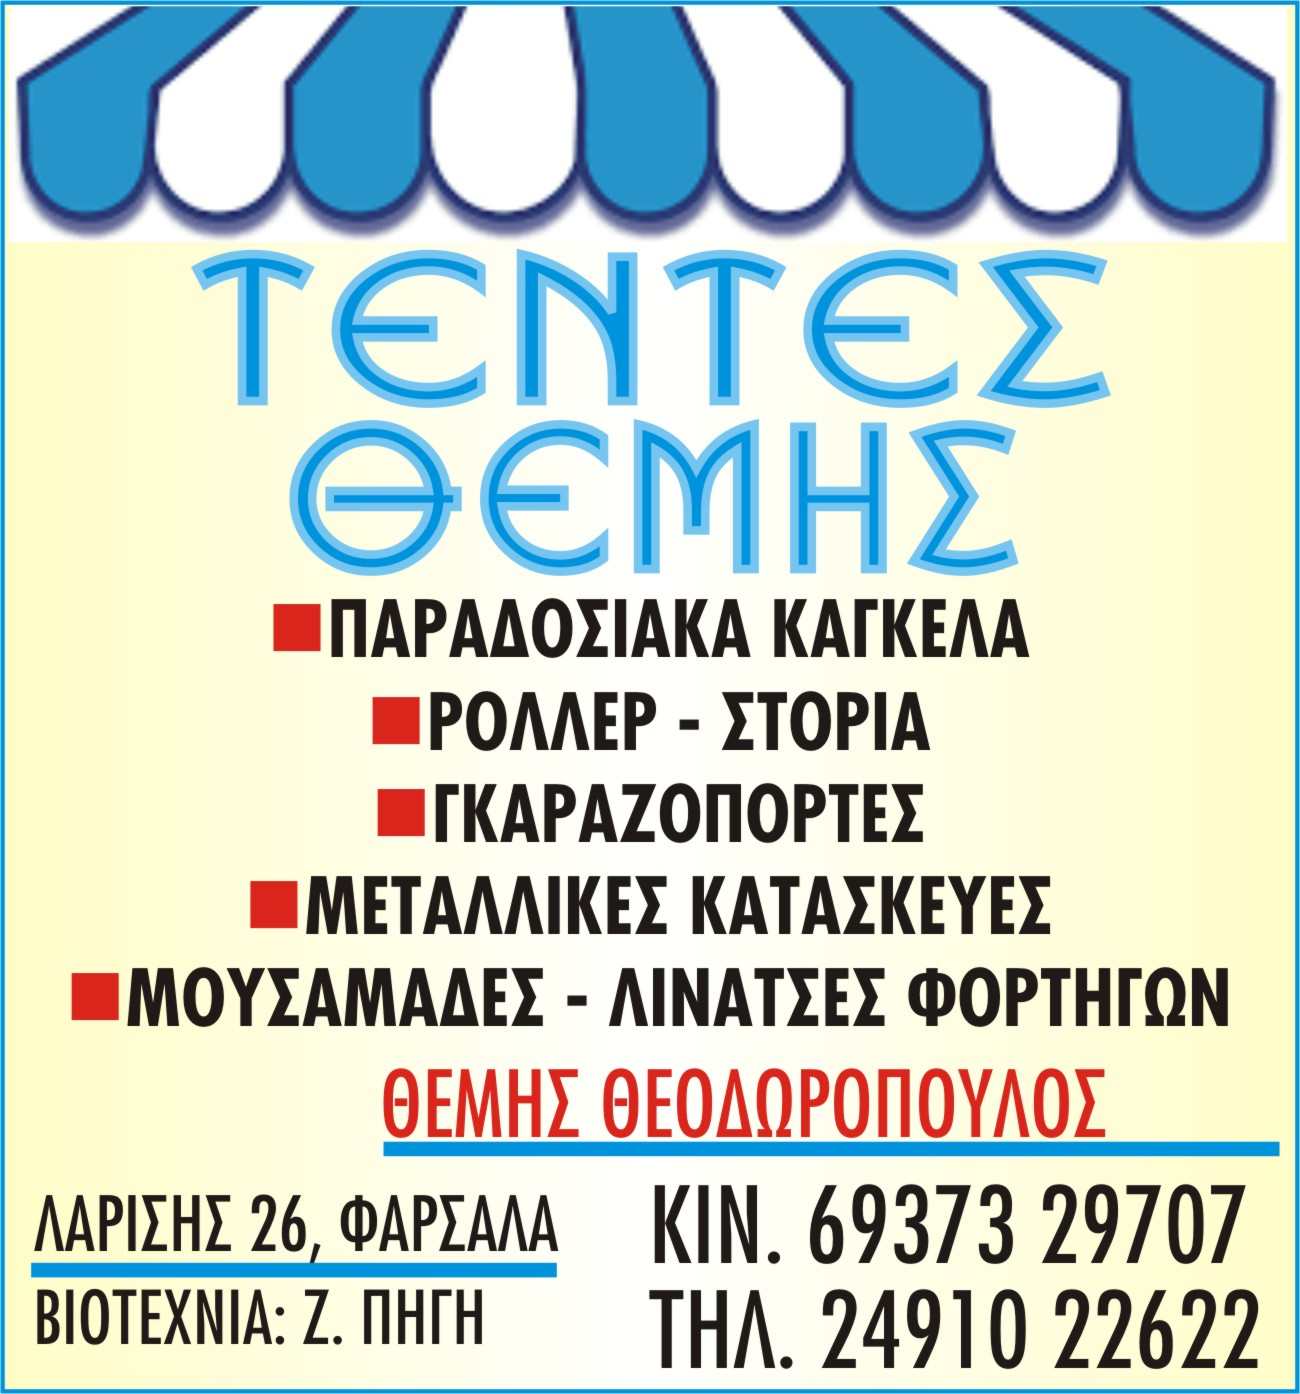 THEMHS TENTES